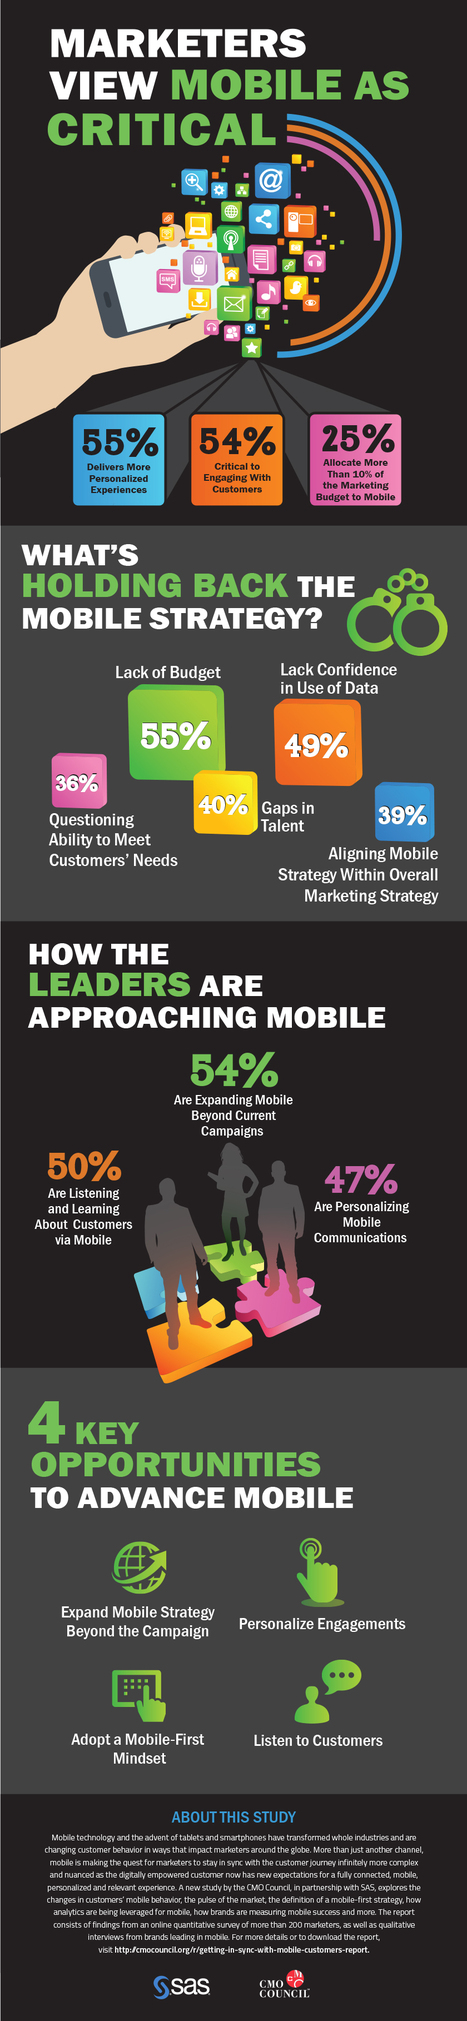 Les chiffres de la stratégie du Marketing Mobile - #Arobasenet | Digital Martketing 101 | Scoop.it